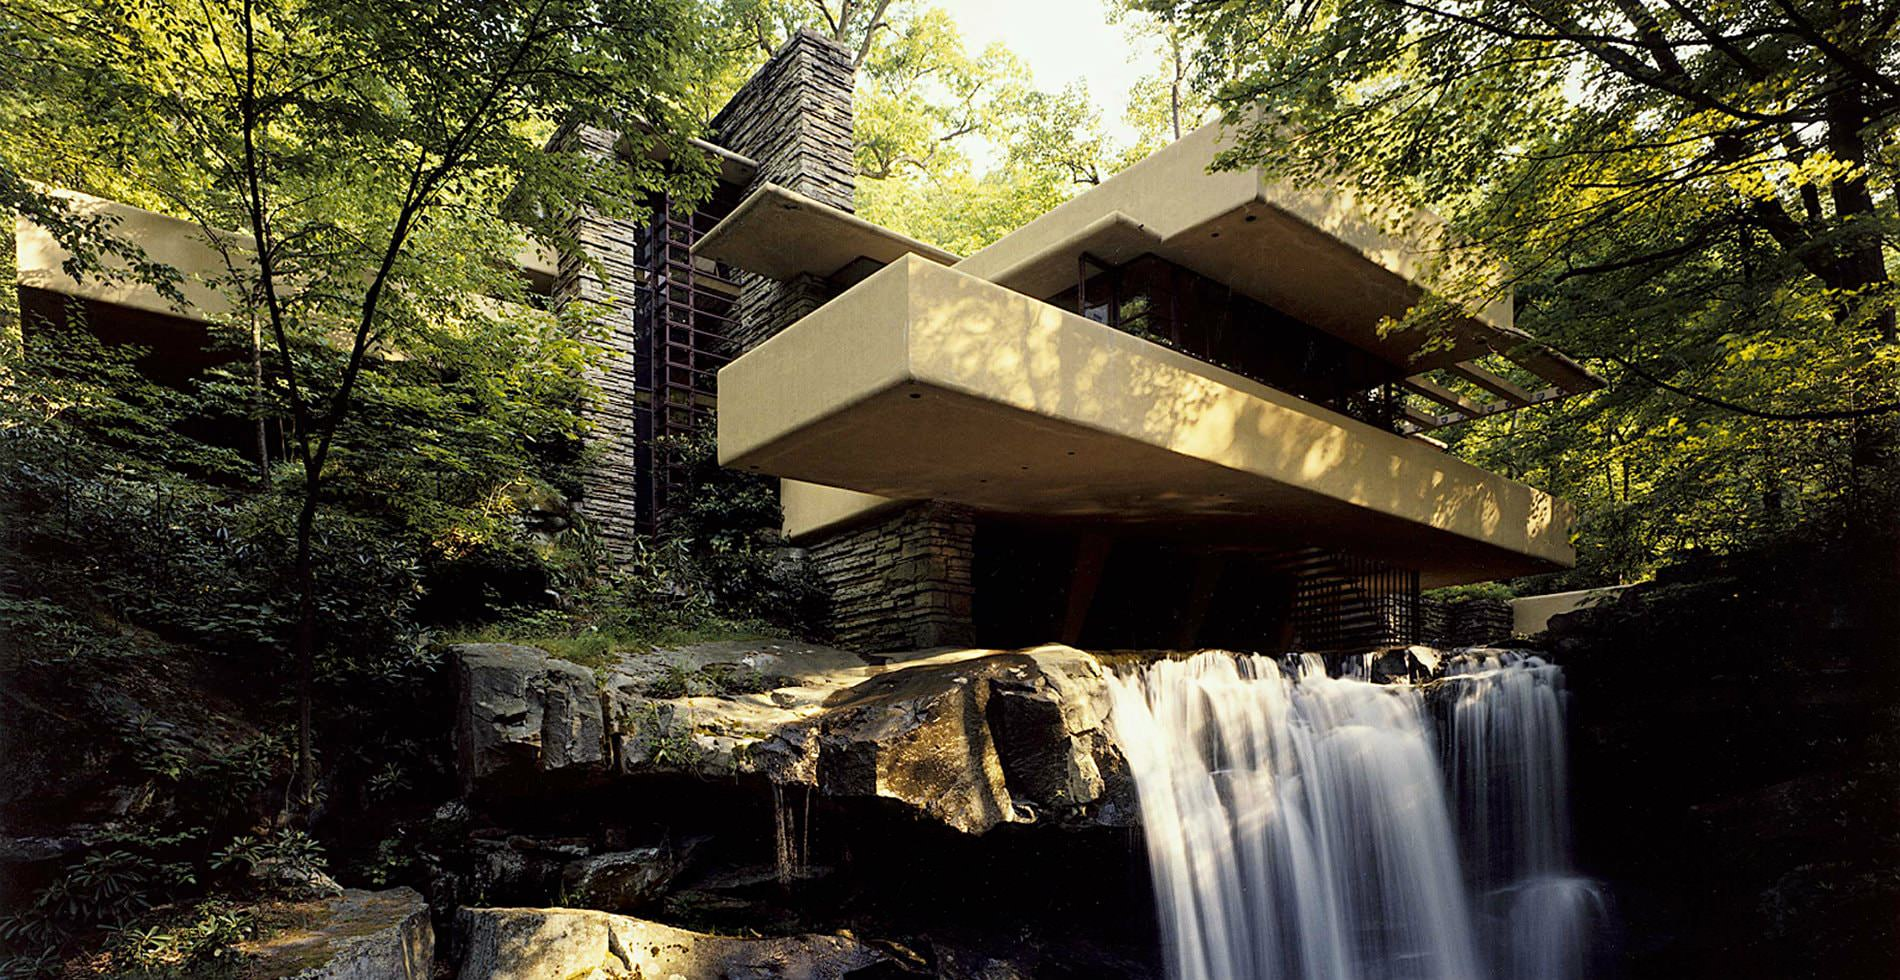 Falling Water House Usa Tour Frank Lloyd Wright S Fallingwater Kentuck Knob In Pennsylvania